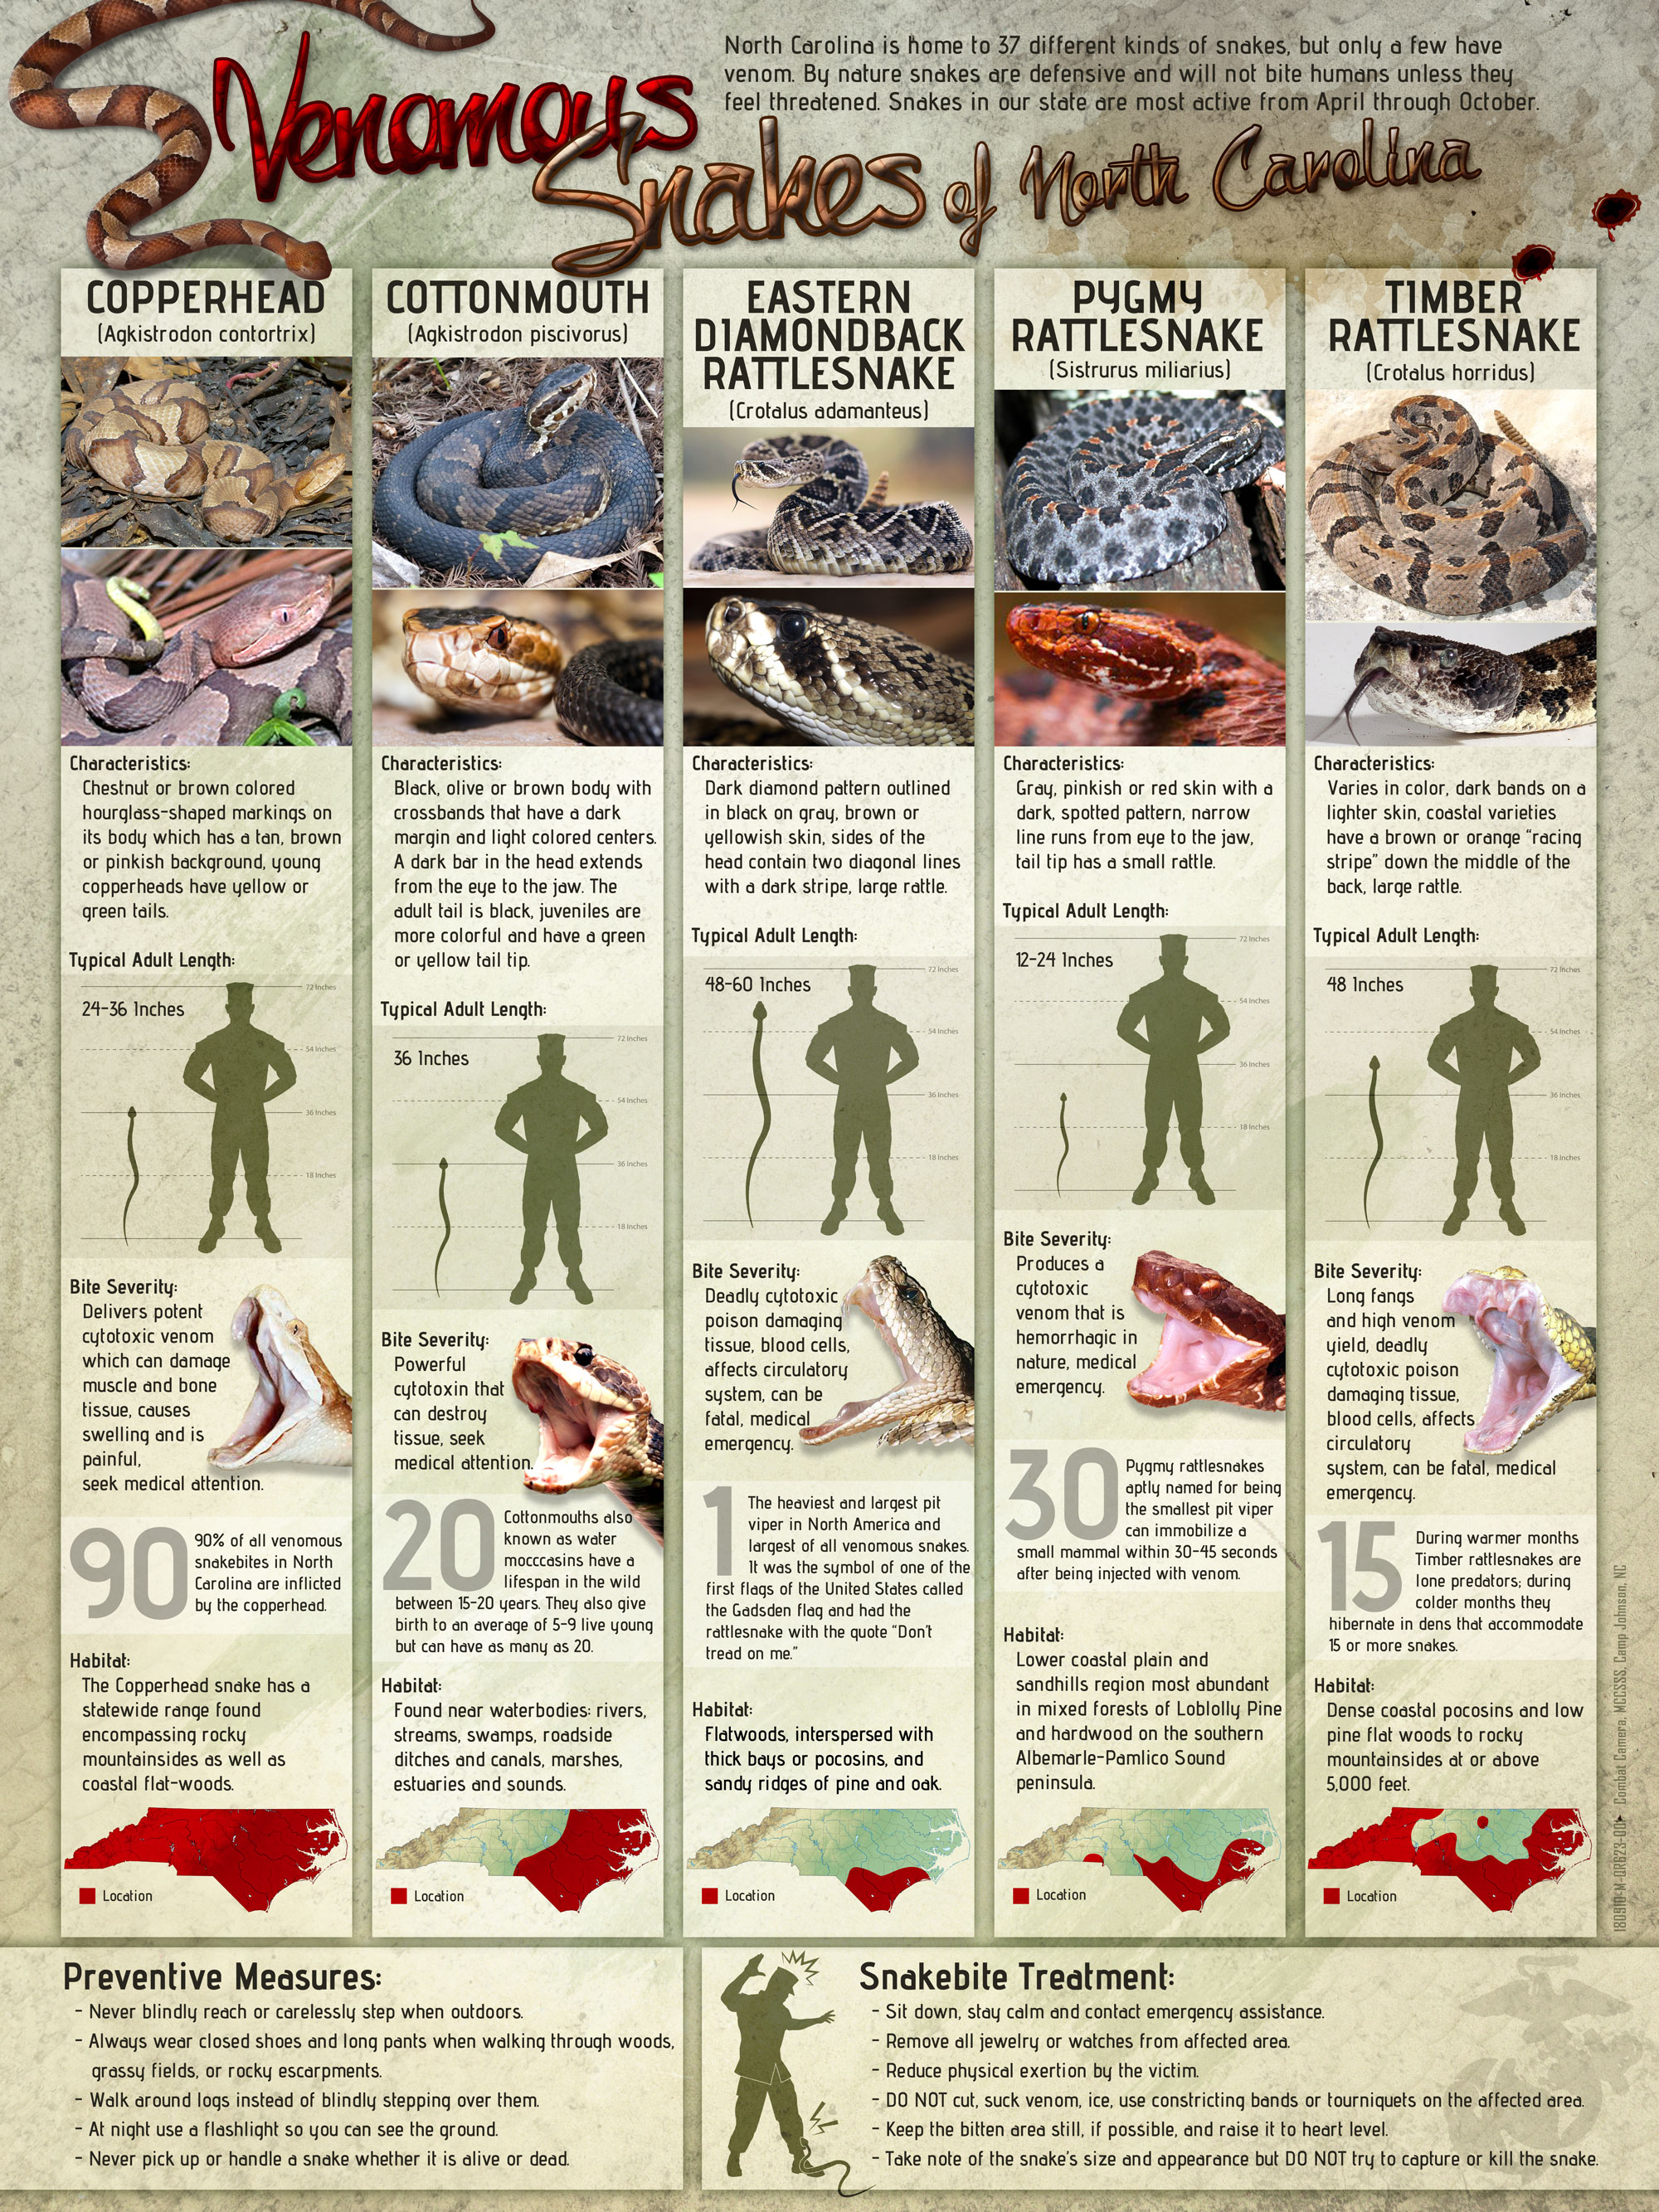 North Carolina Venomous Snakes Poster created to educate United States Marines and Sailors located in the North Carolina region about the five types of venomous snakes. The infographic poster shows and describes the specific characteristics of the copperhead, cottonmouth, eastern diamondback rattlesnake, pygmy rattlesnake, and timber rattlesnake along with the typical length, bite severity, preventive measure and snake bite treatment.